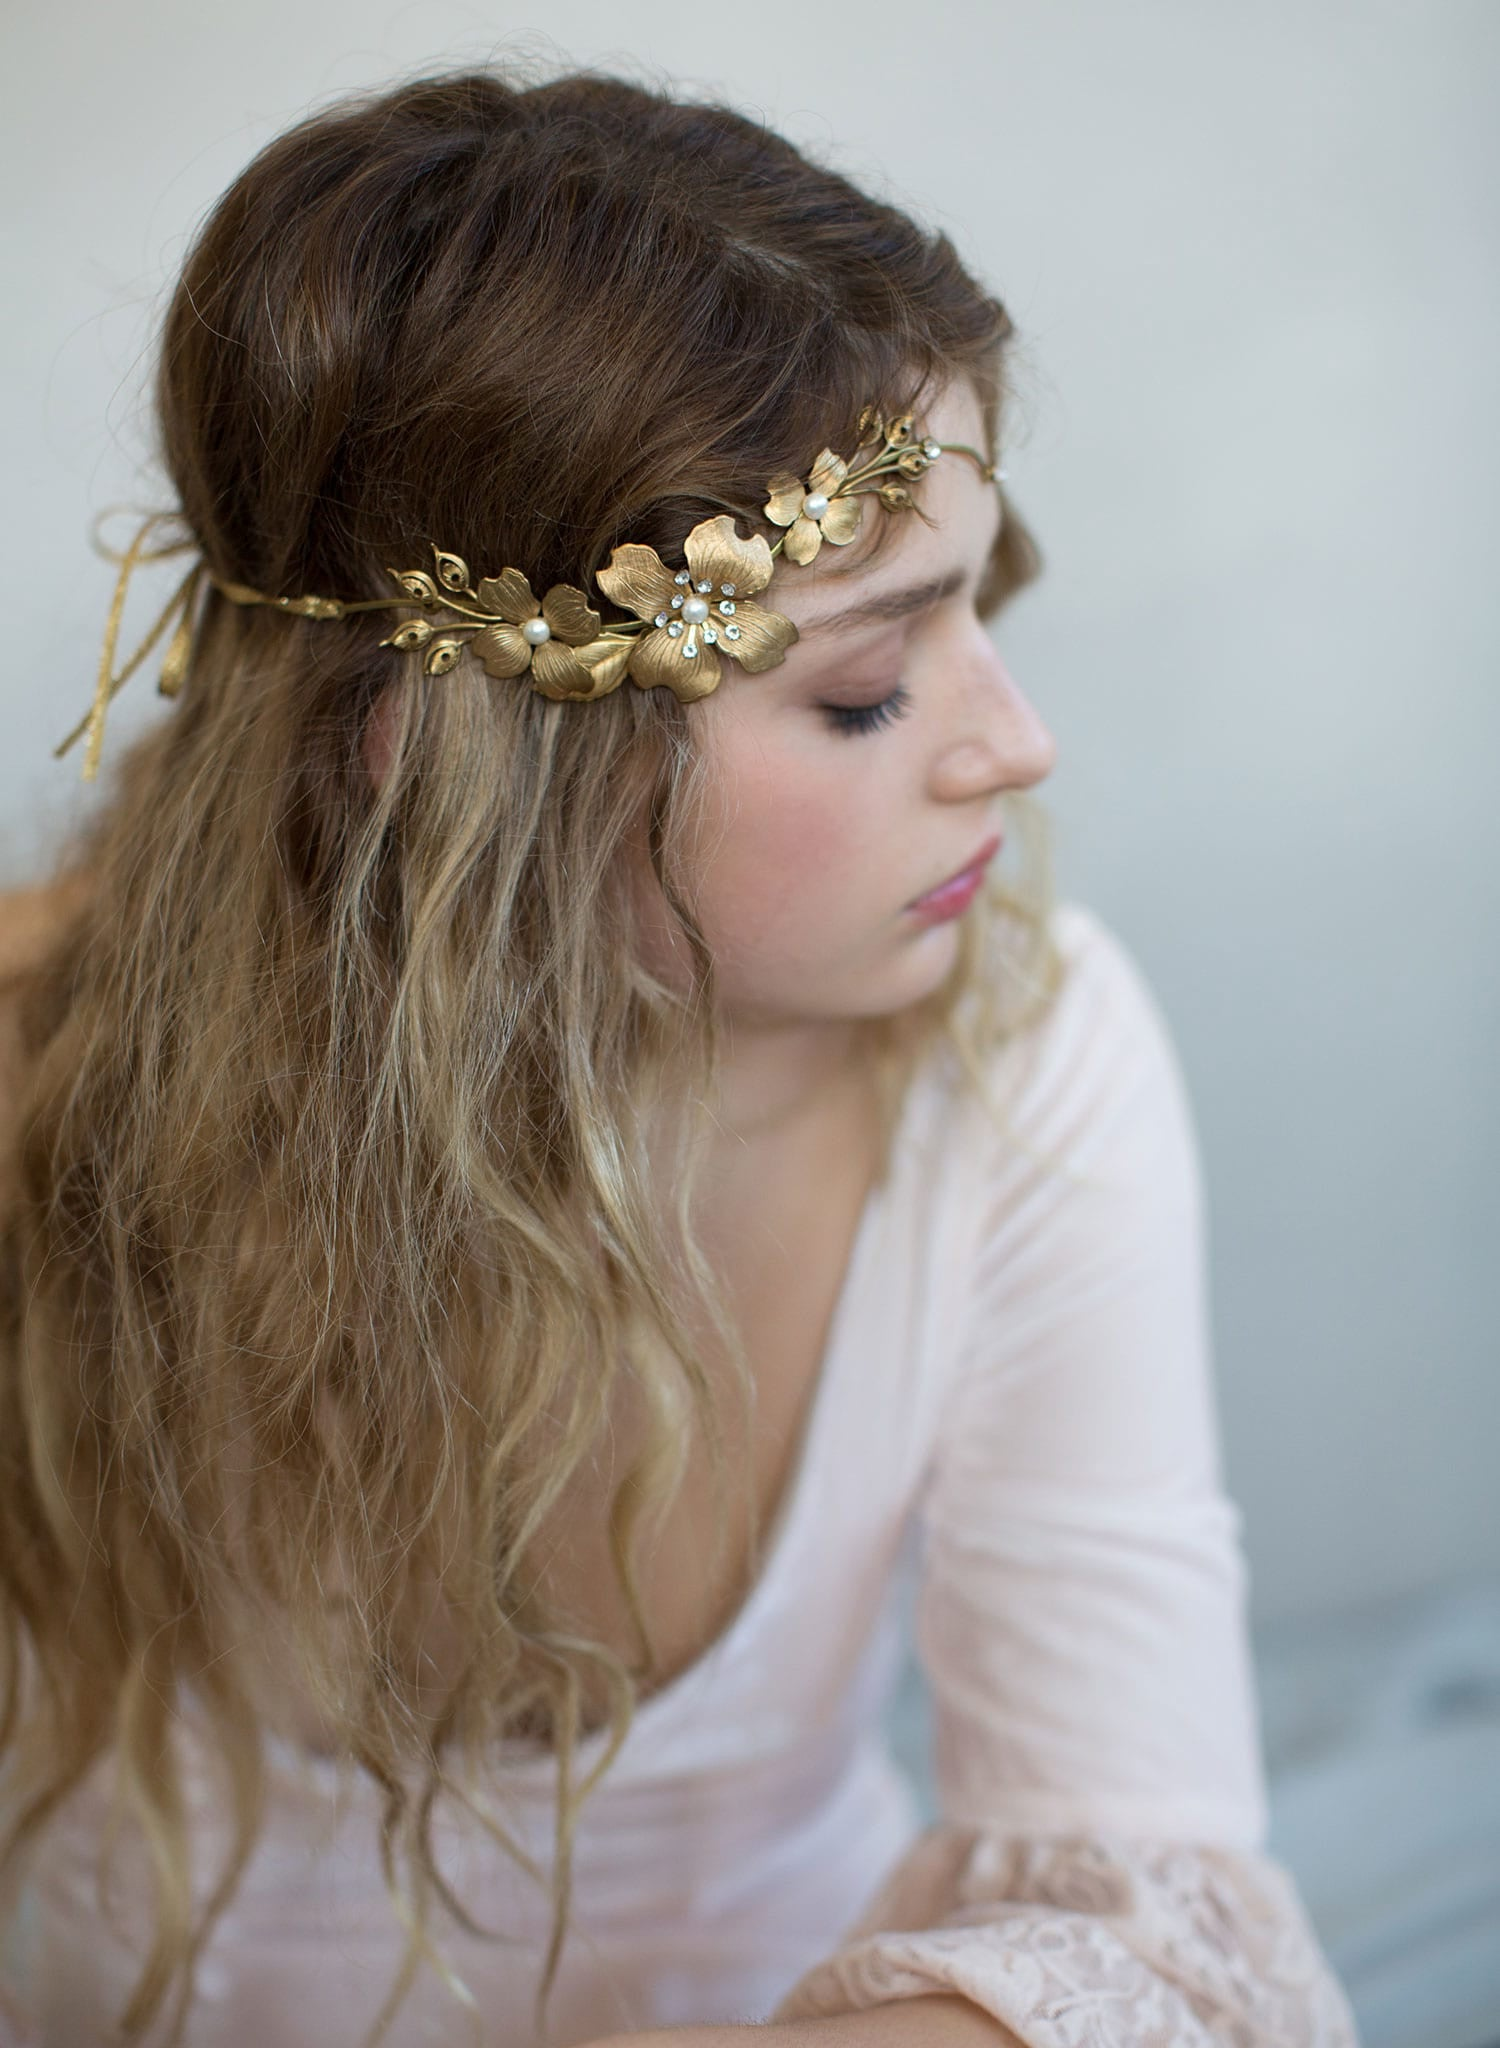 Br Bridal Headpieces Twigs And Honey -  floral headband boho headpiece bridal headpiece wedding accessory nature inspired twigs